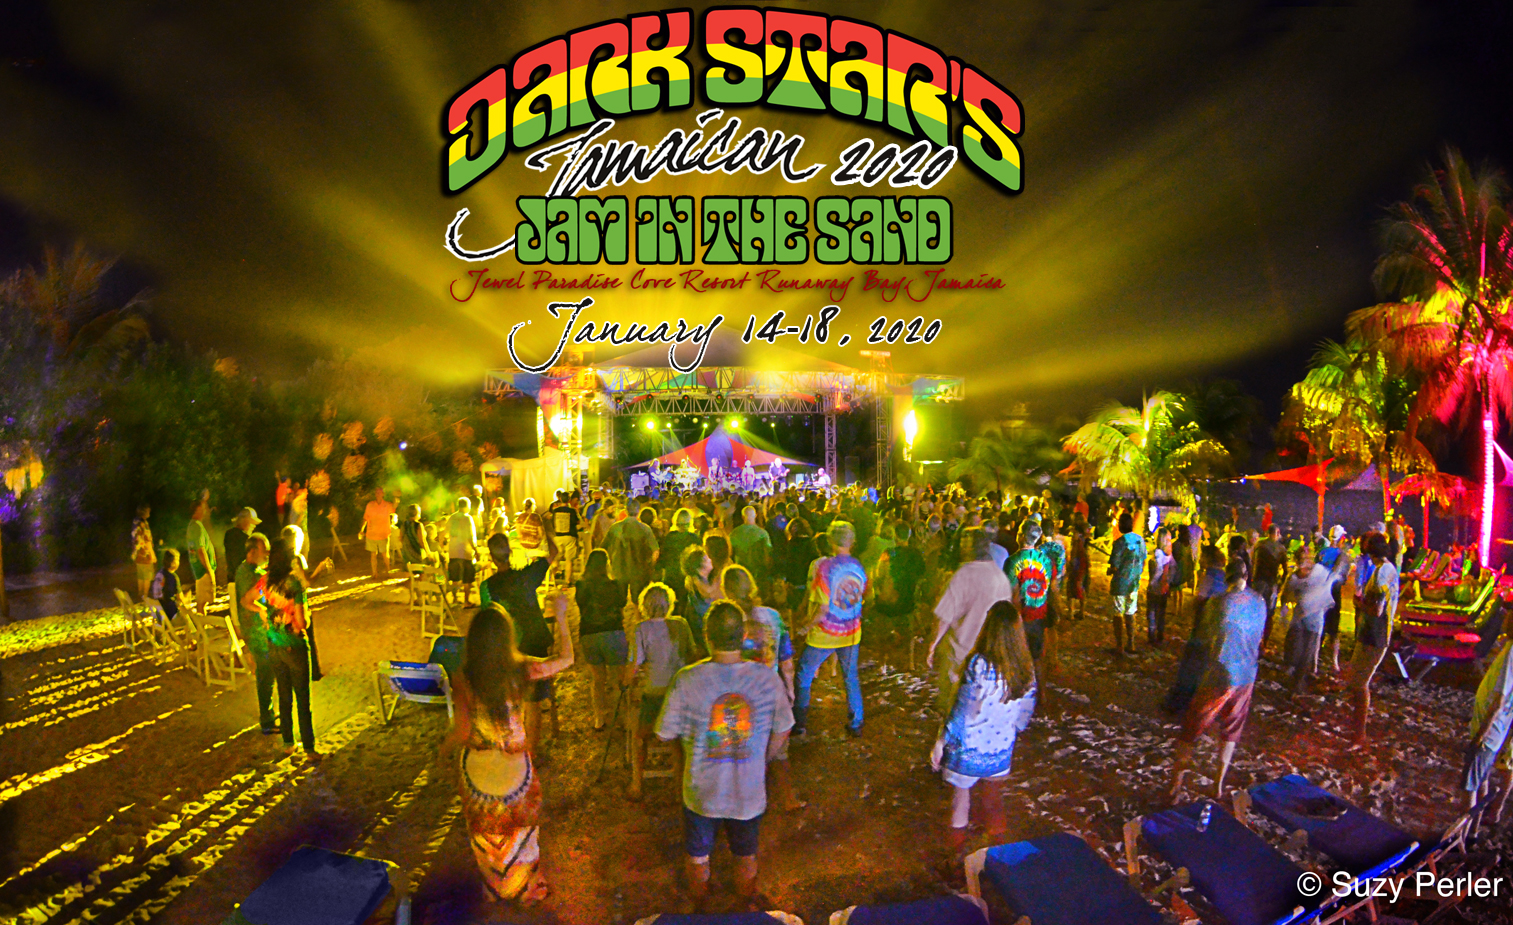 Dark Star Orchestra Announce 8th Annual Jamaican Jam in the Sand